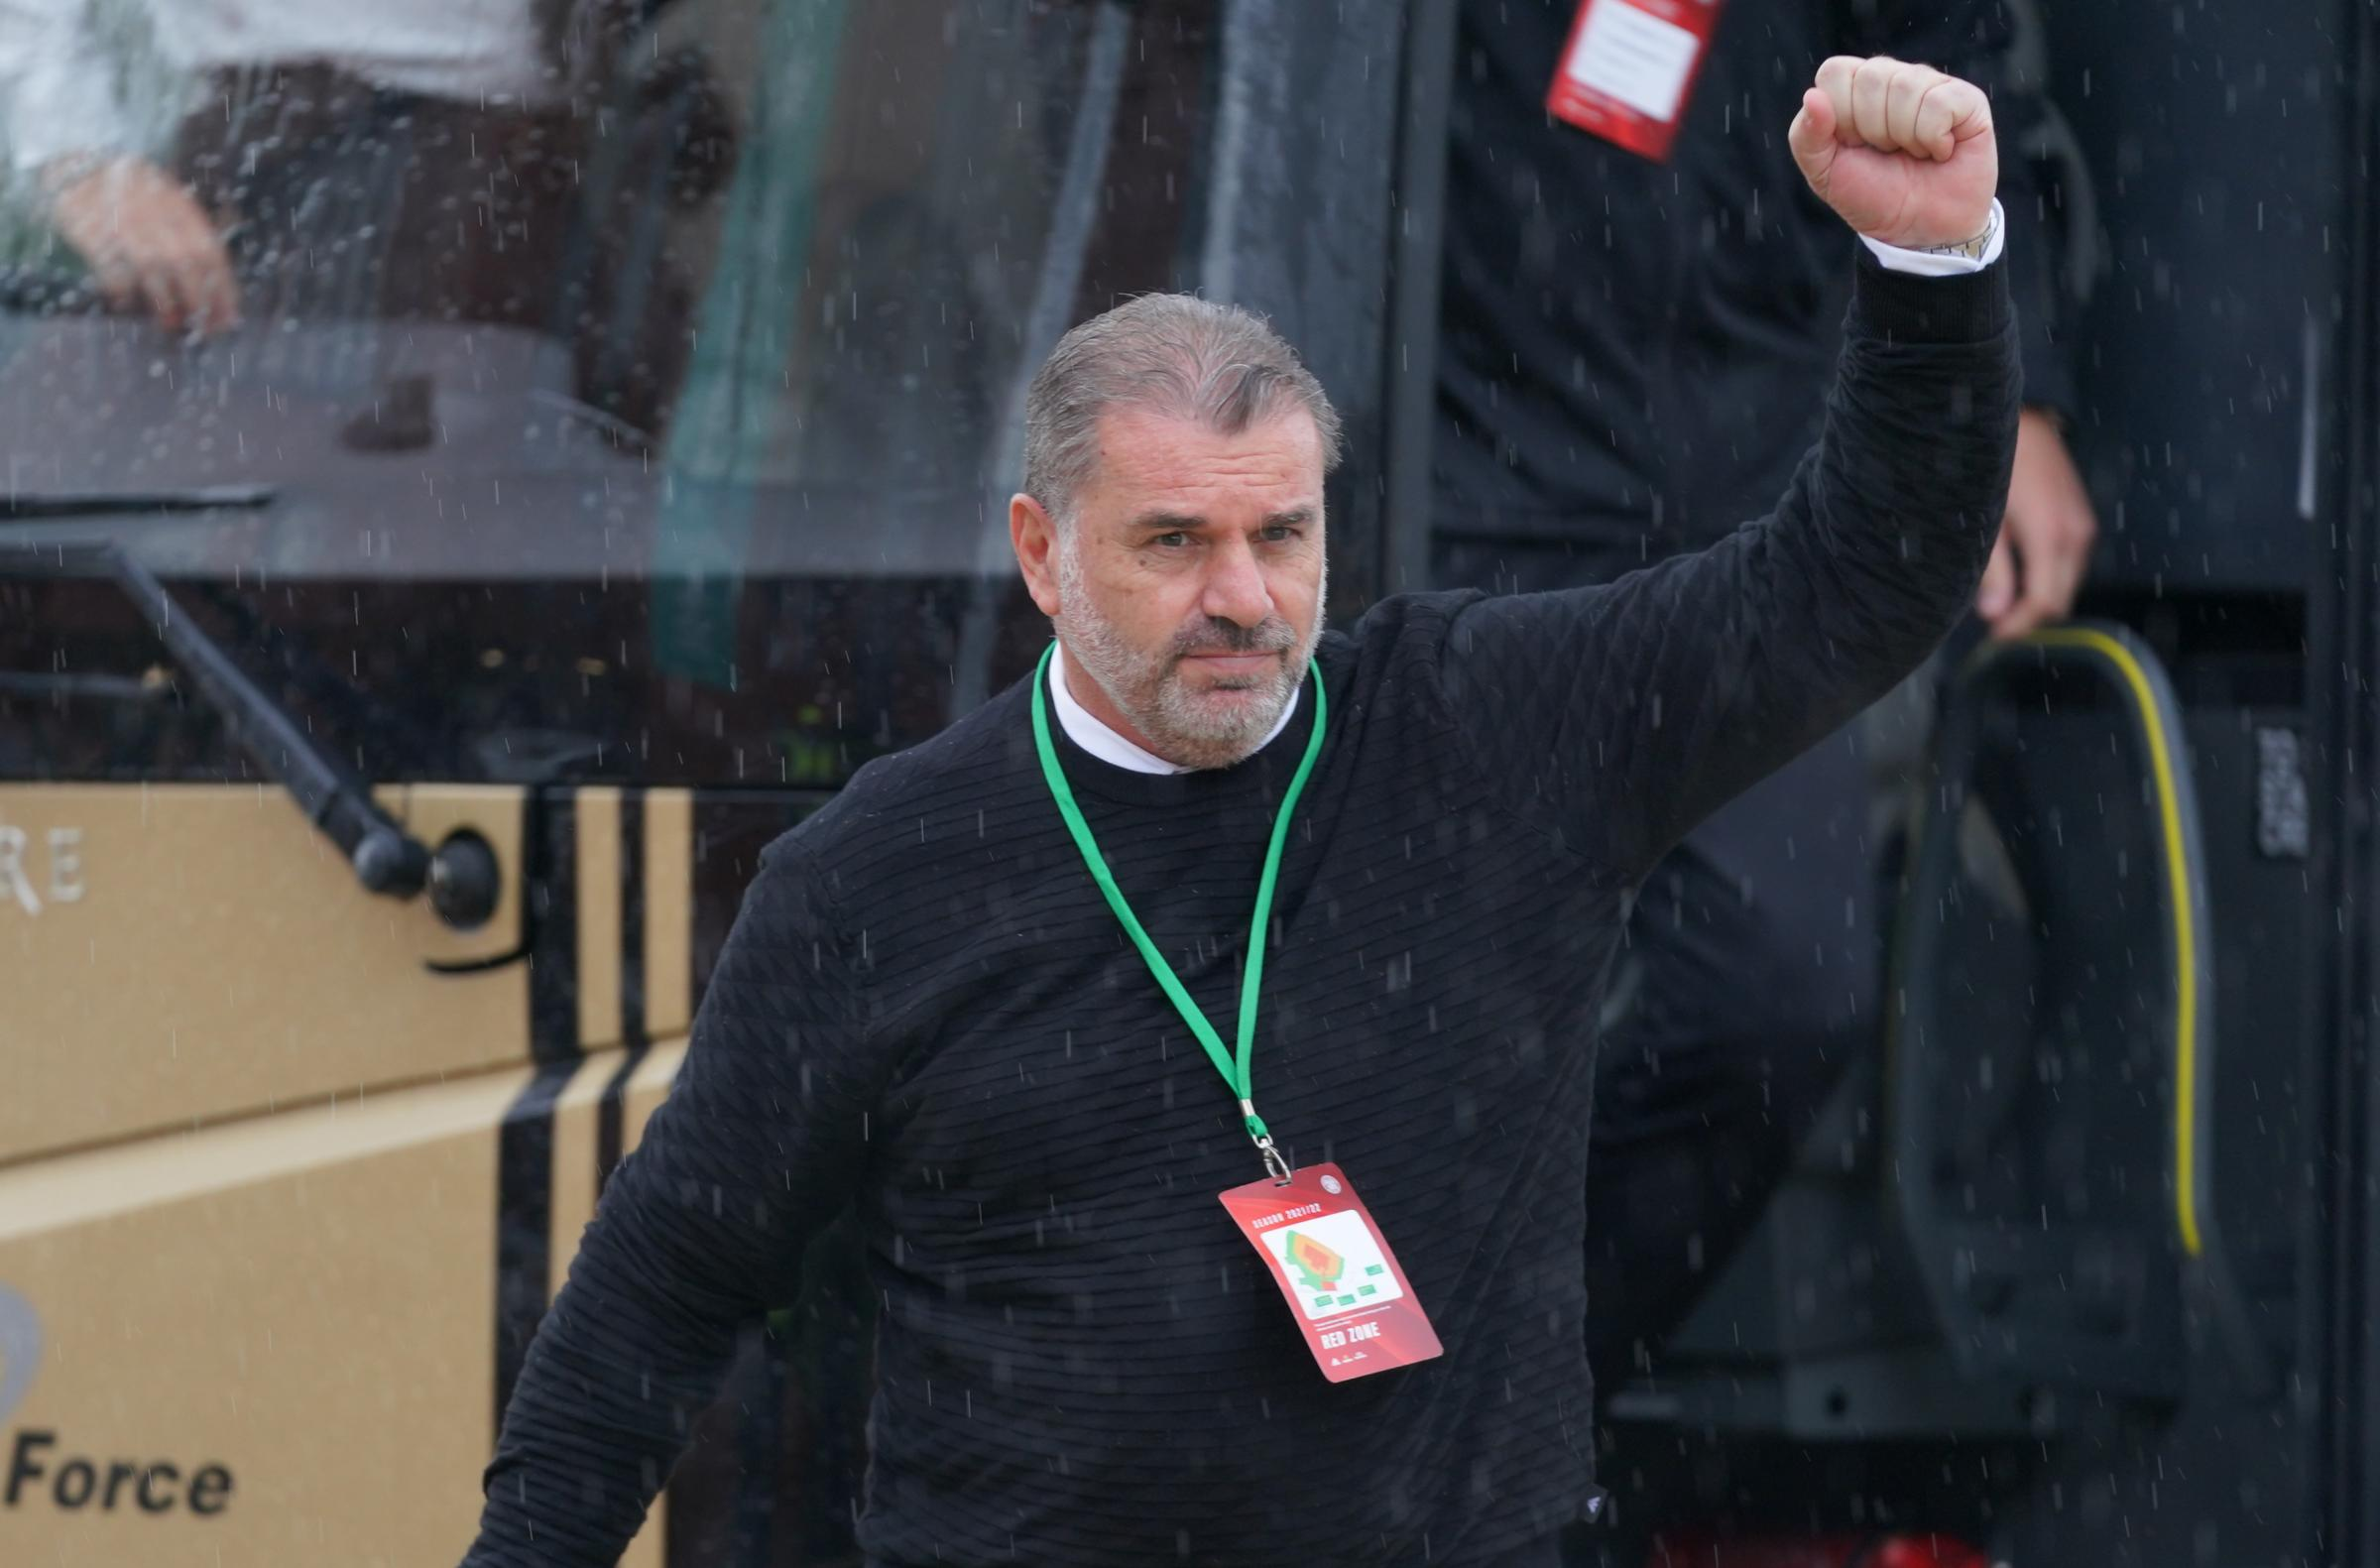 Celtic boss Ange Postecoglou hails Rangers' swift action against fans who racially abused Kyogo: 'Did the right thing'